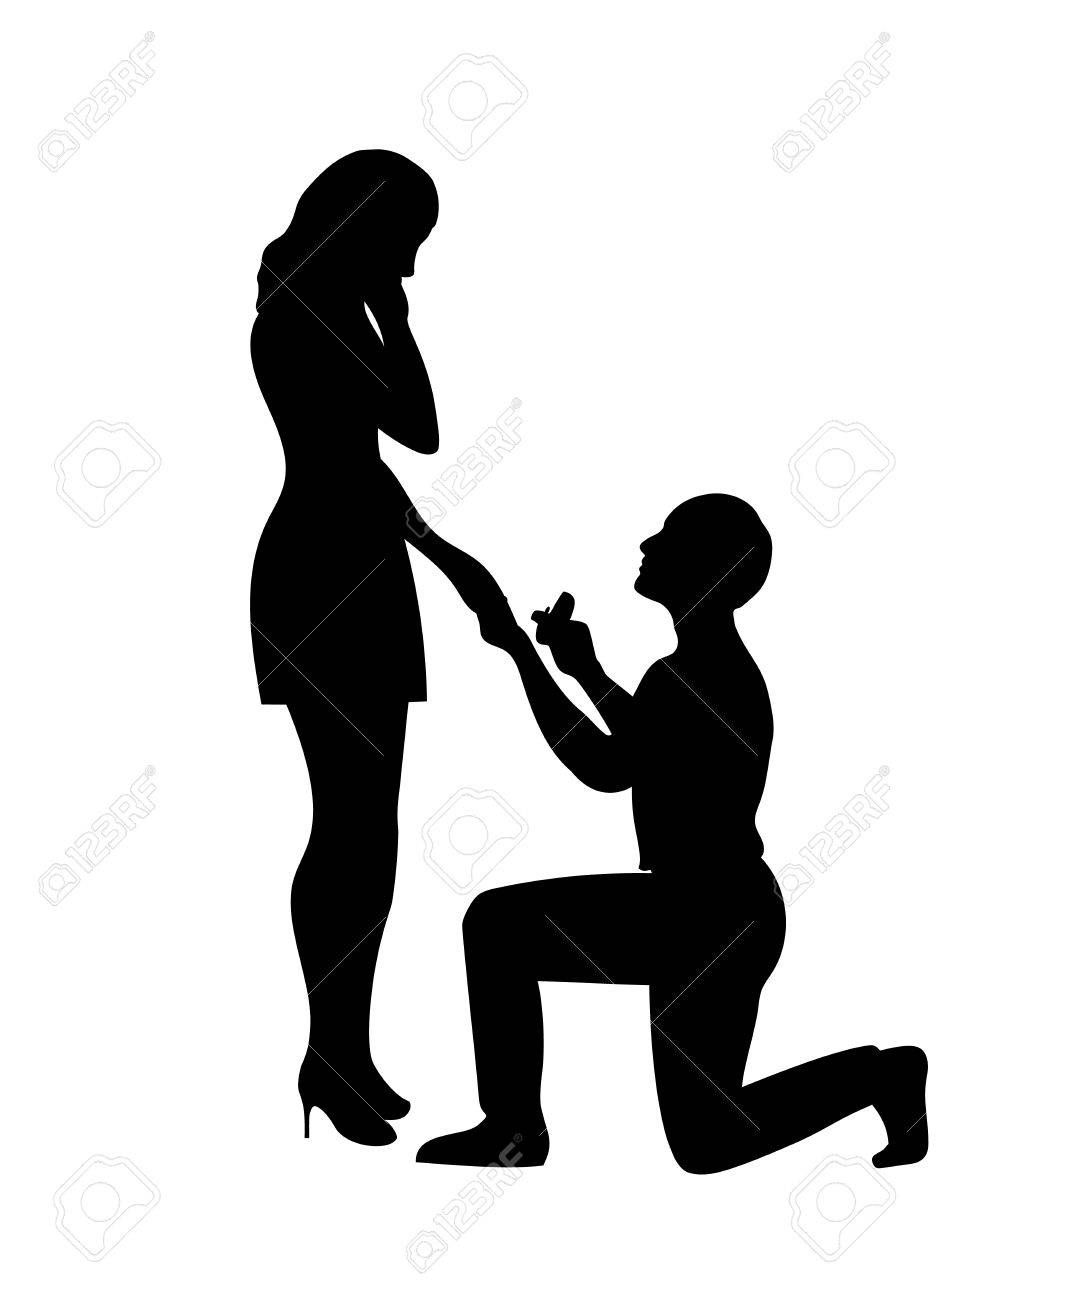 Man Makes A Marriage Proposal For A Girl Standing On One Knee Wedding Couple Cartoon Silhouette Marriage Proposals